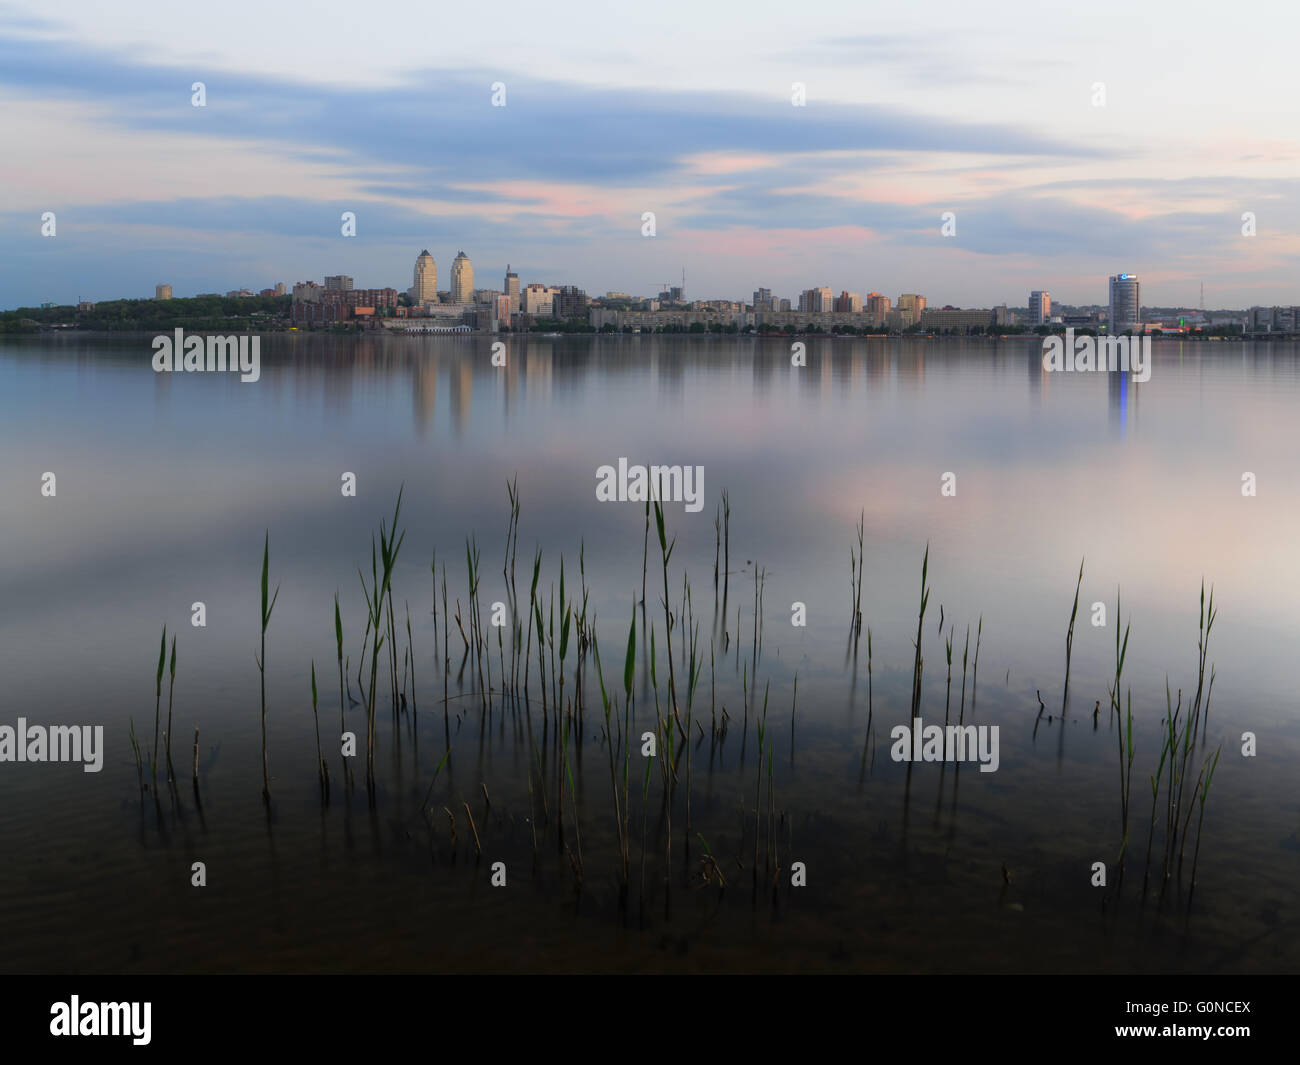 Twighlight in the Dnipropetrovsk with reflection. Ukraine - Stock Image